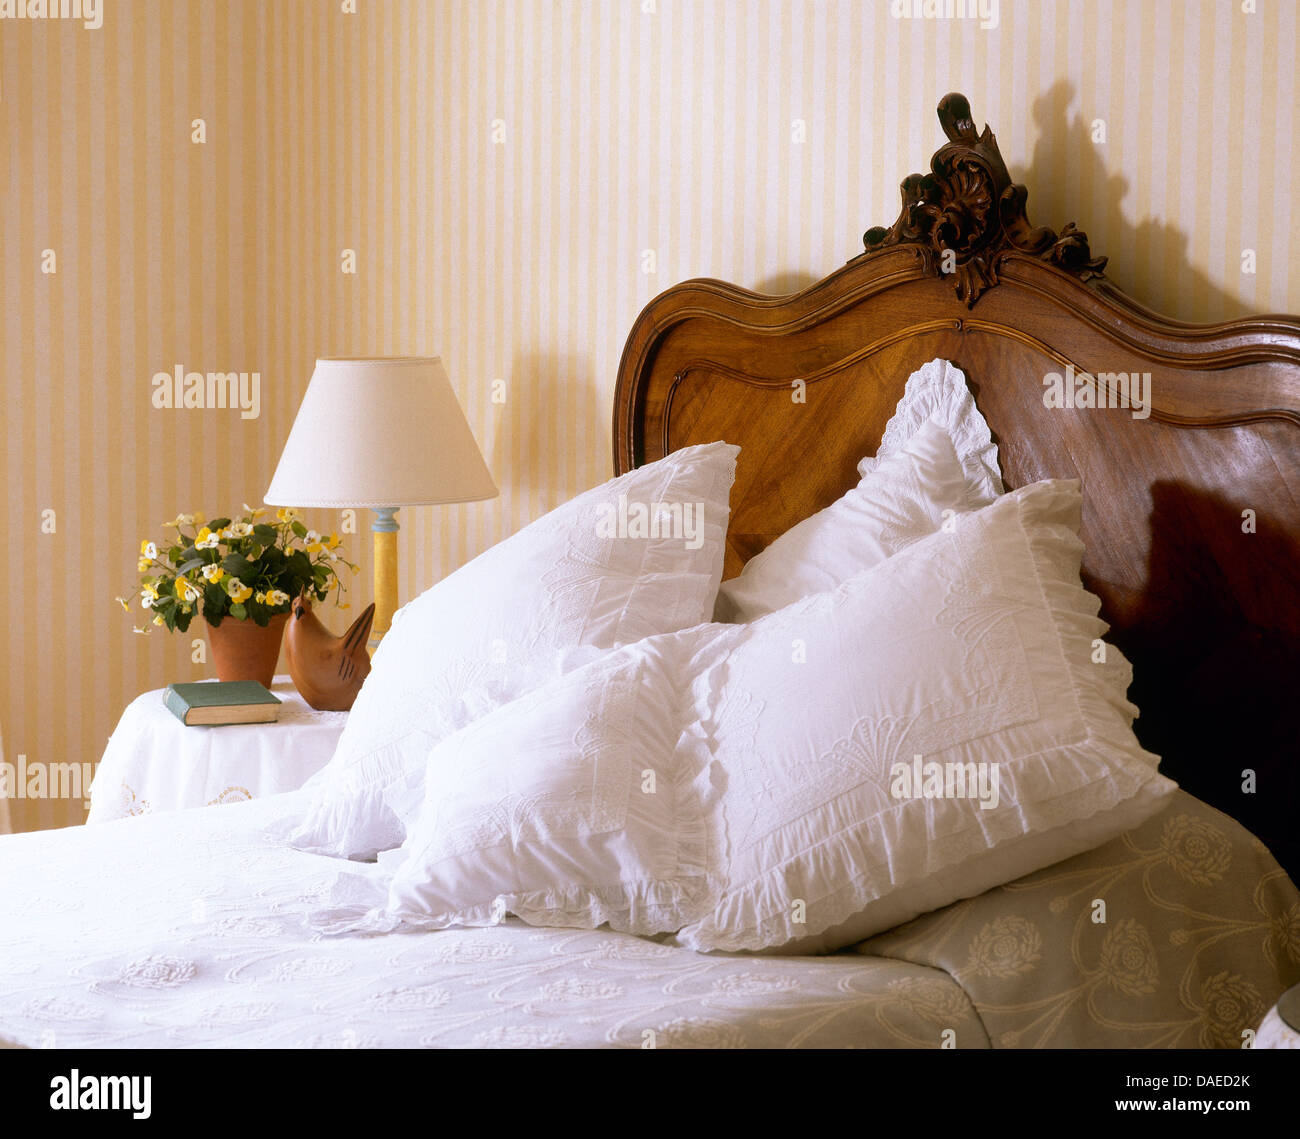 Lace Trimmed White Cushions On Antique Ed With Carved Wooden Stock Photo Alamy